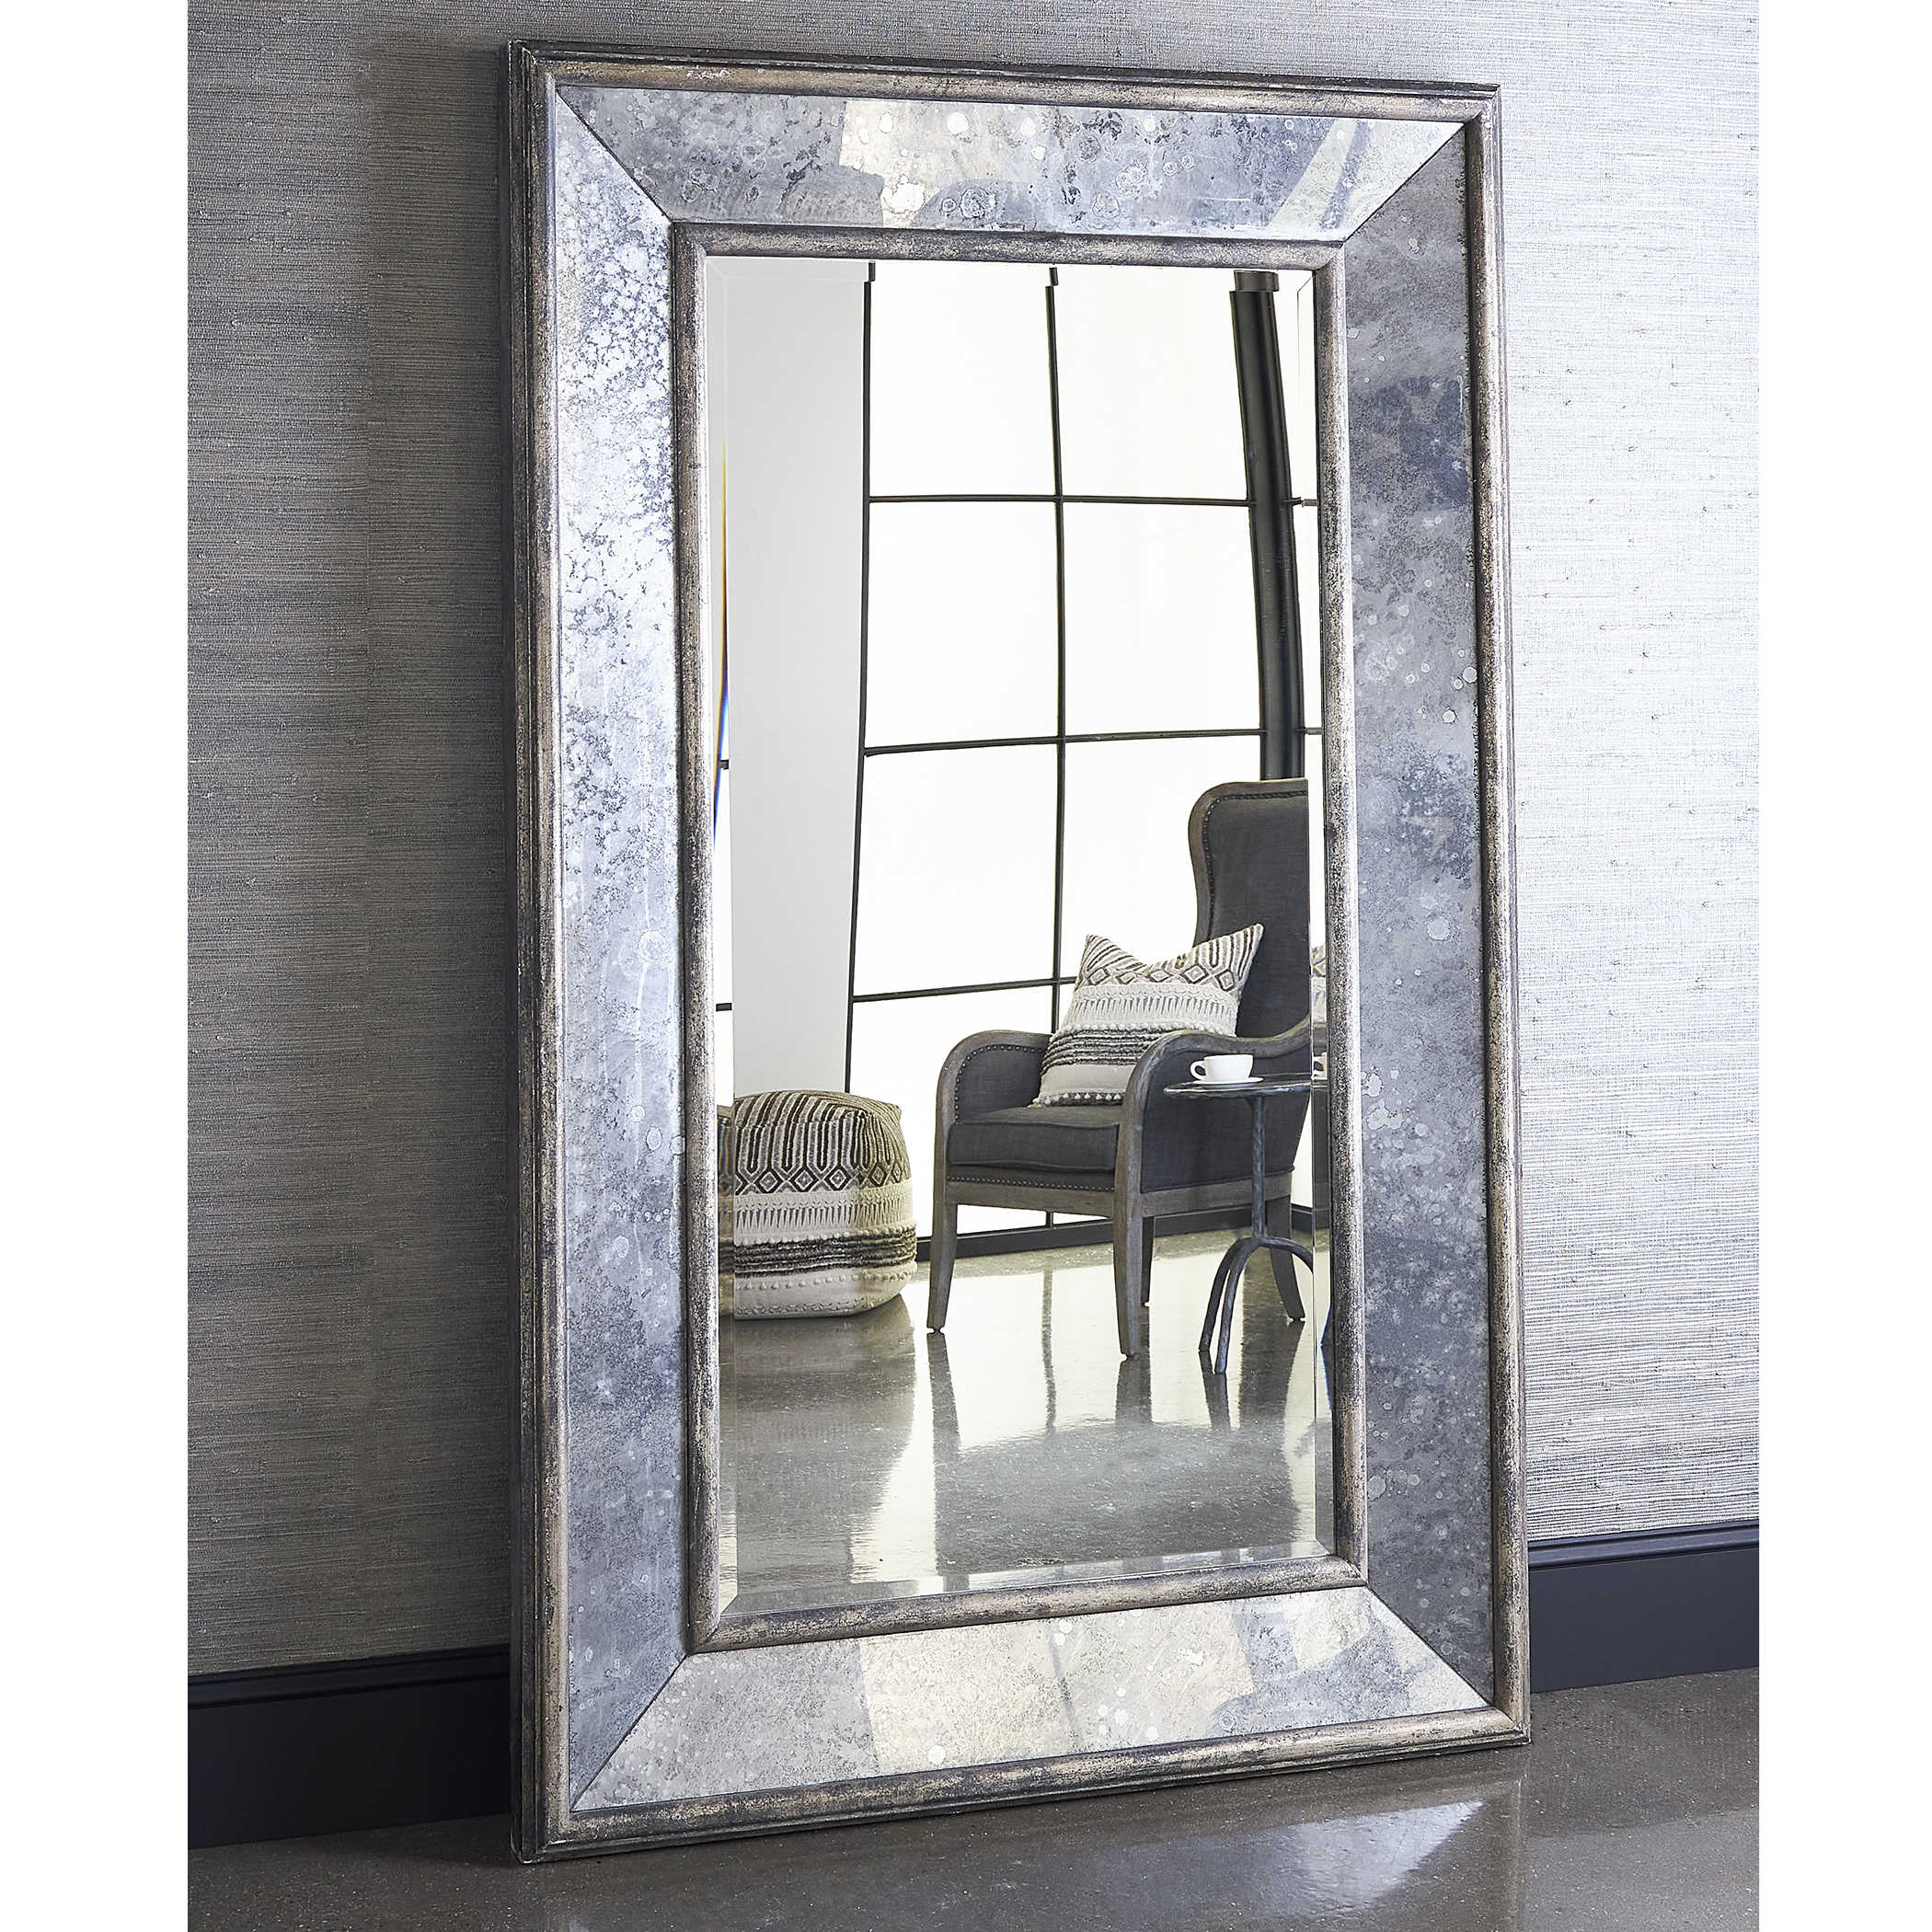 Wholesale Uttermost Accent Furniture, Mirrors, Wall Decor